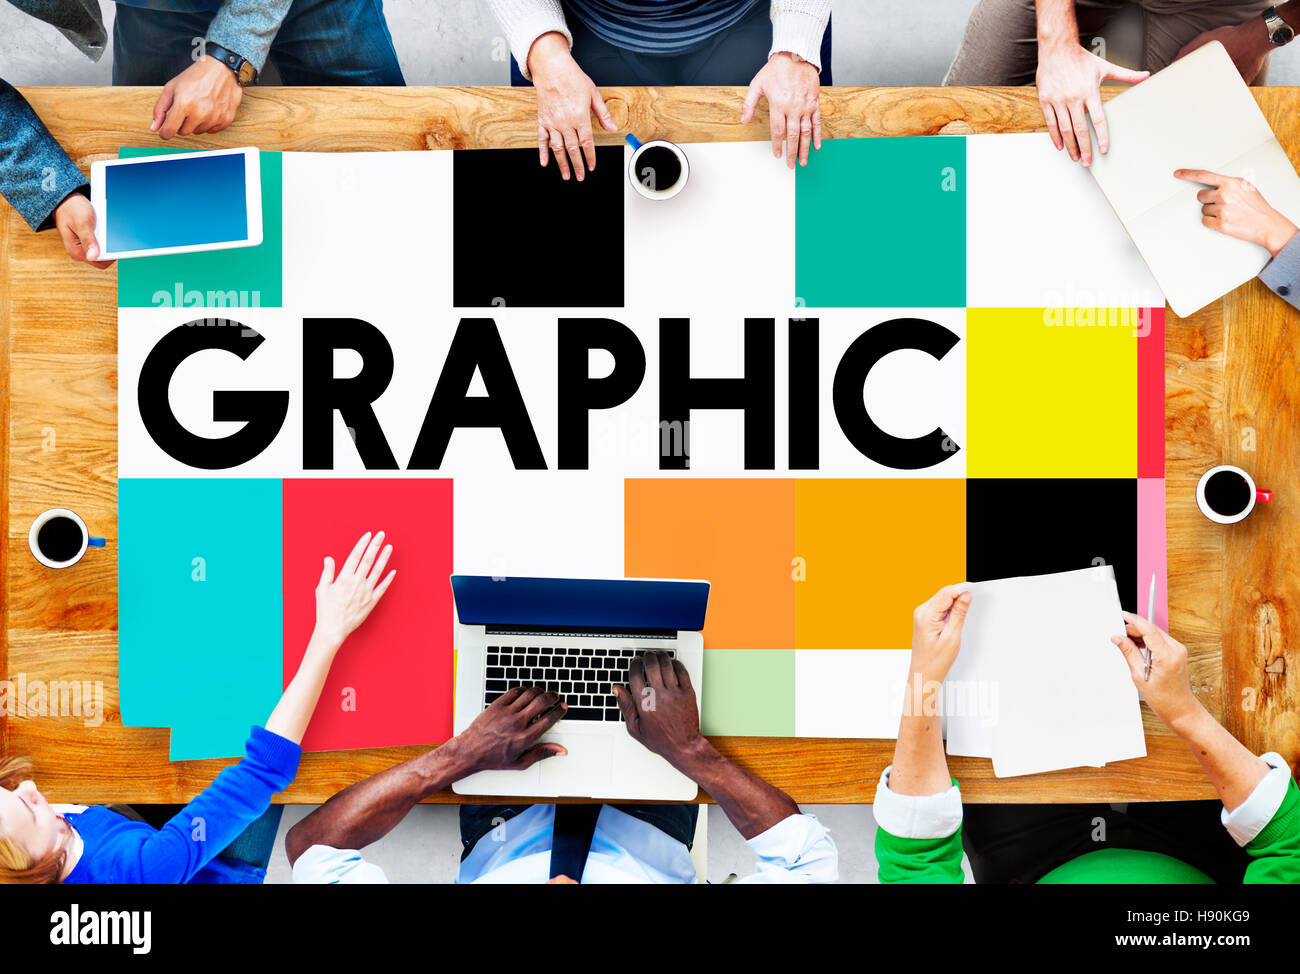 Graphic Creative Design Visual Art Concept - Stock Image